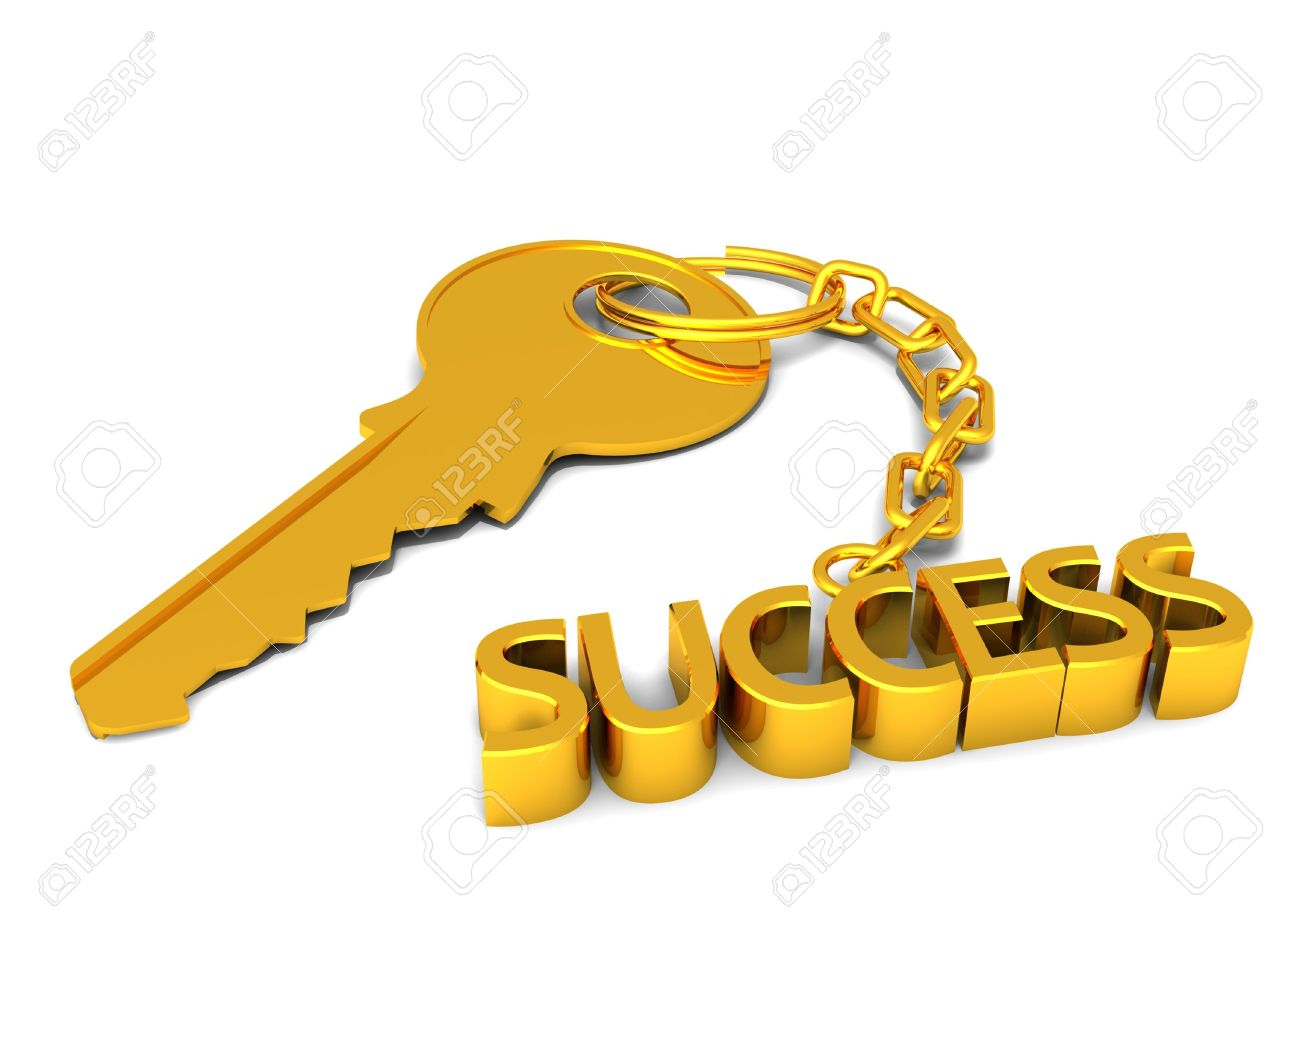 Three Dimensional Render Of A Golden Key With SUCCESS On Chain.